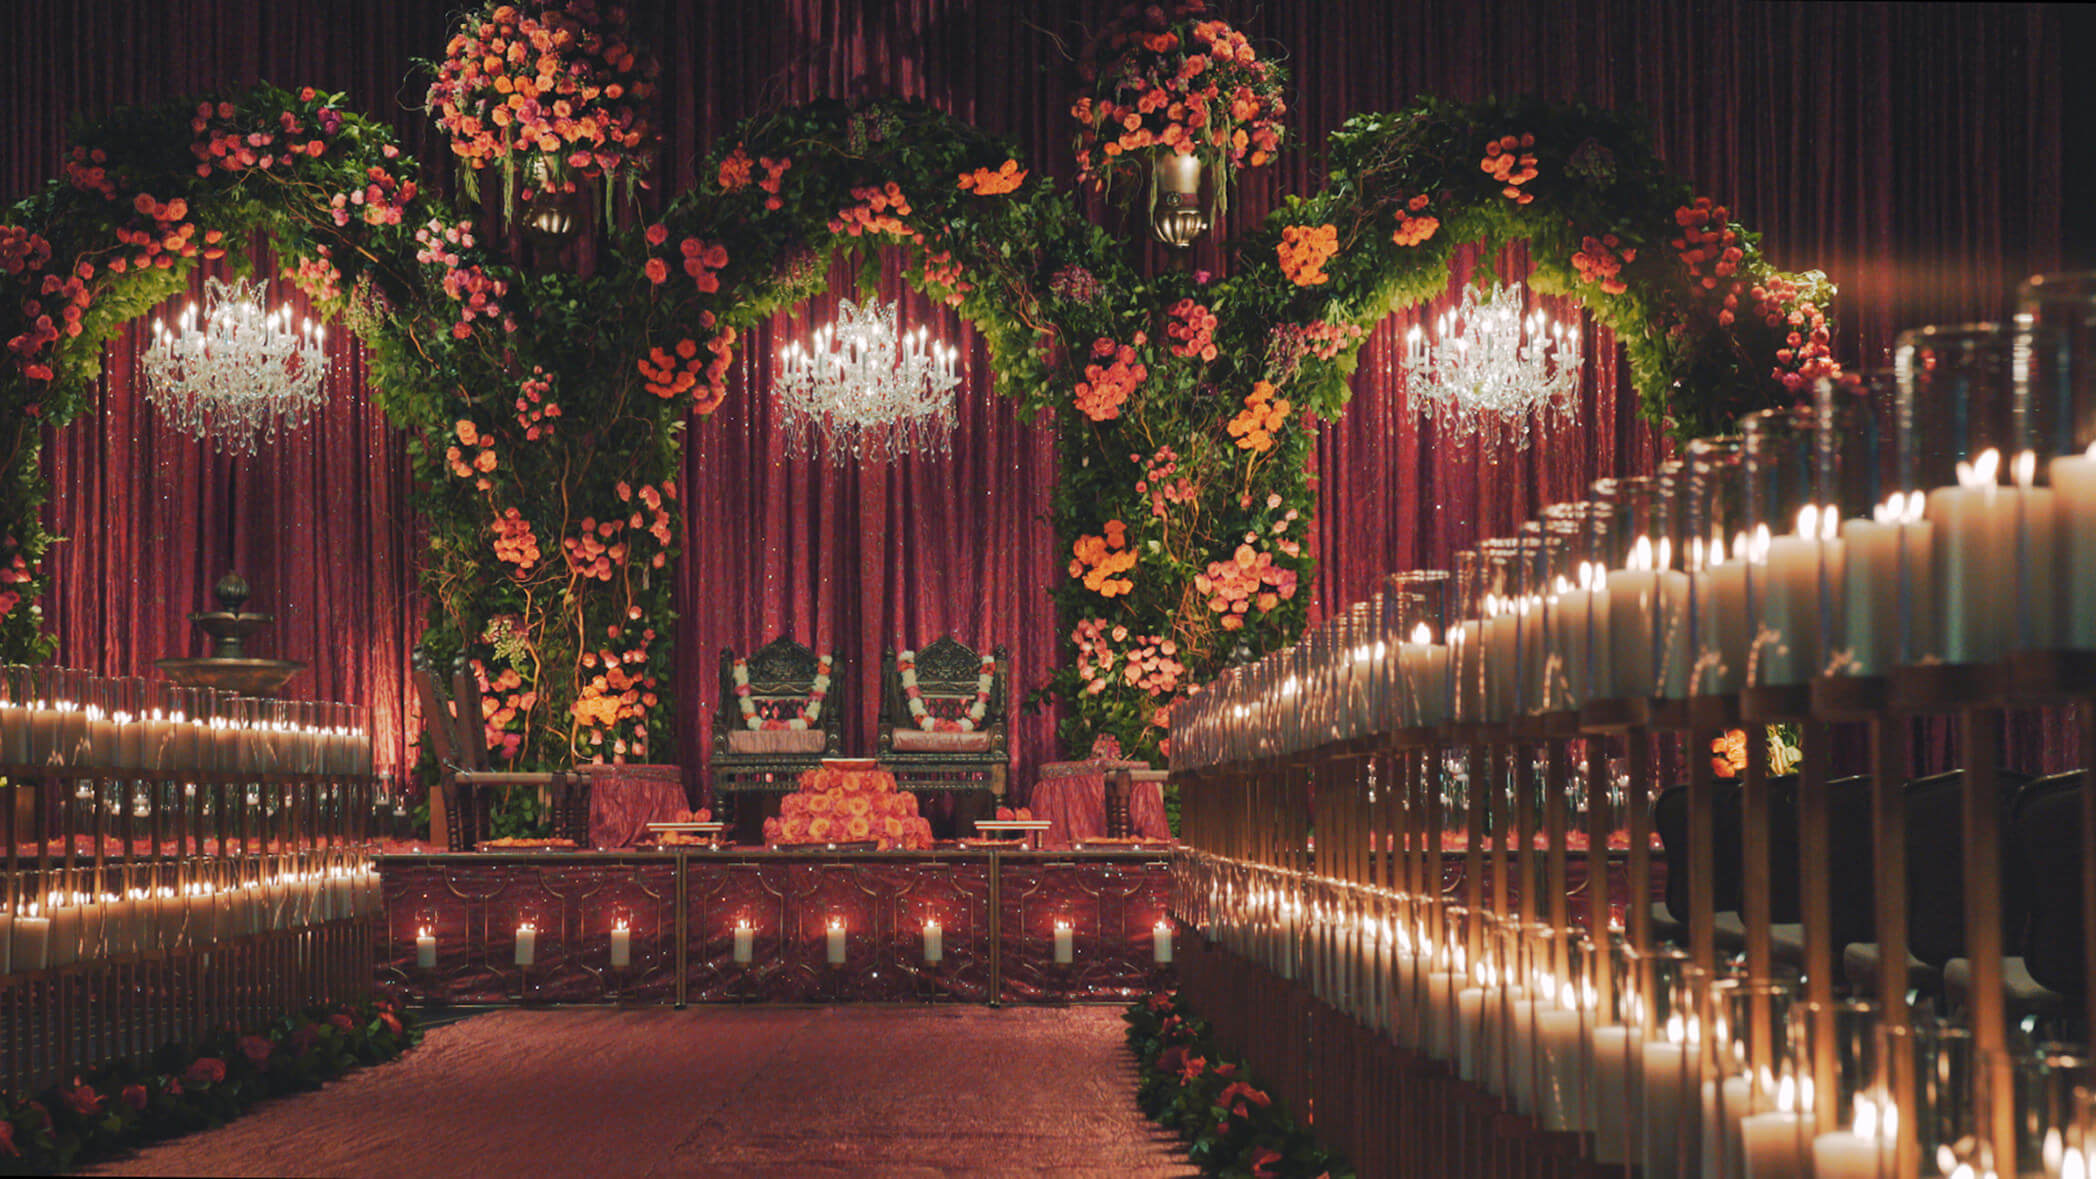 Indian Wedding Ceremony Space